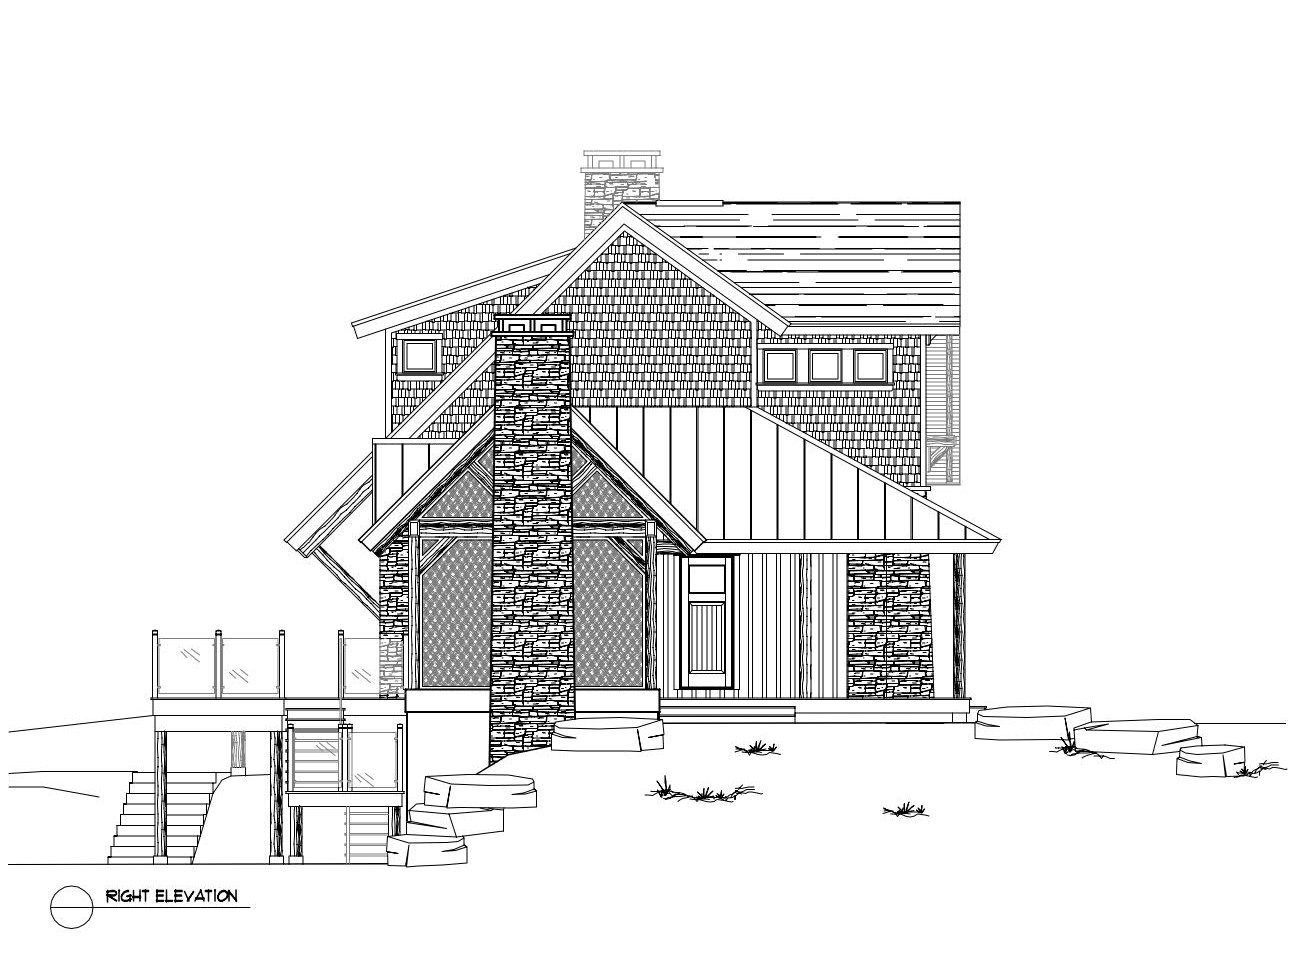 Normerica Timber Frame, House Plan, The Rosseau 3829, Right Elevation